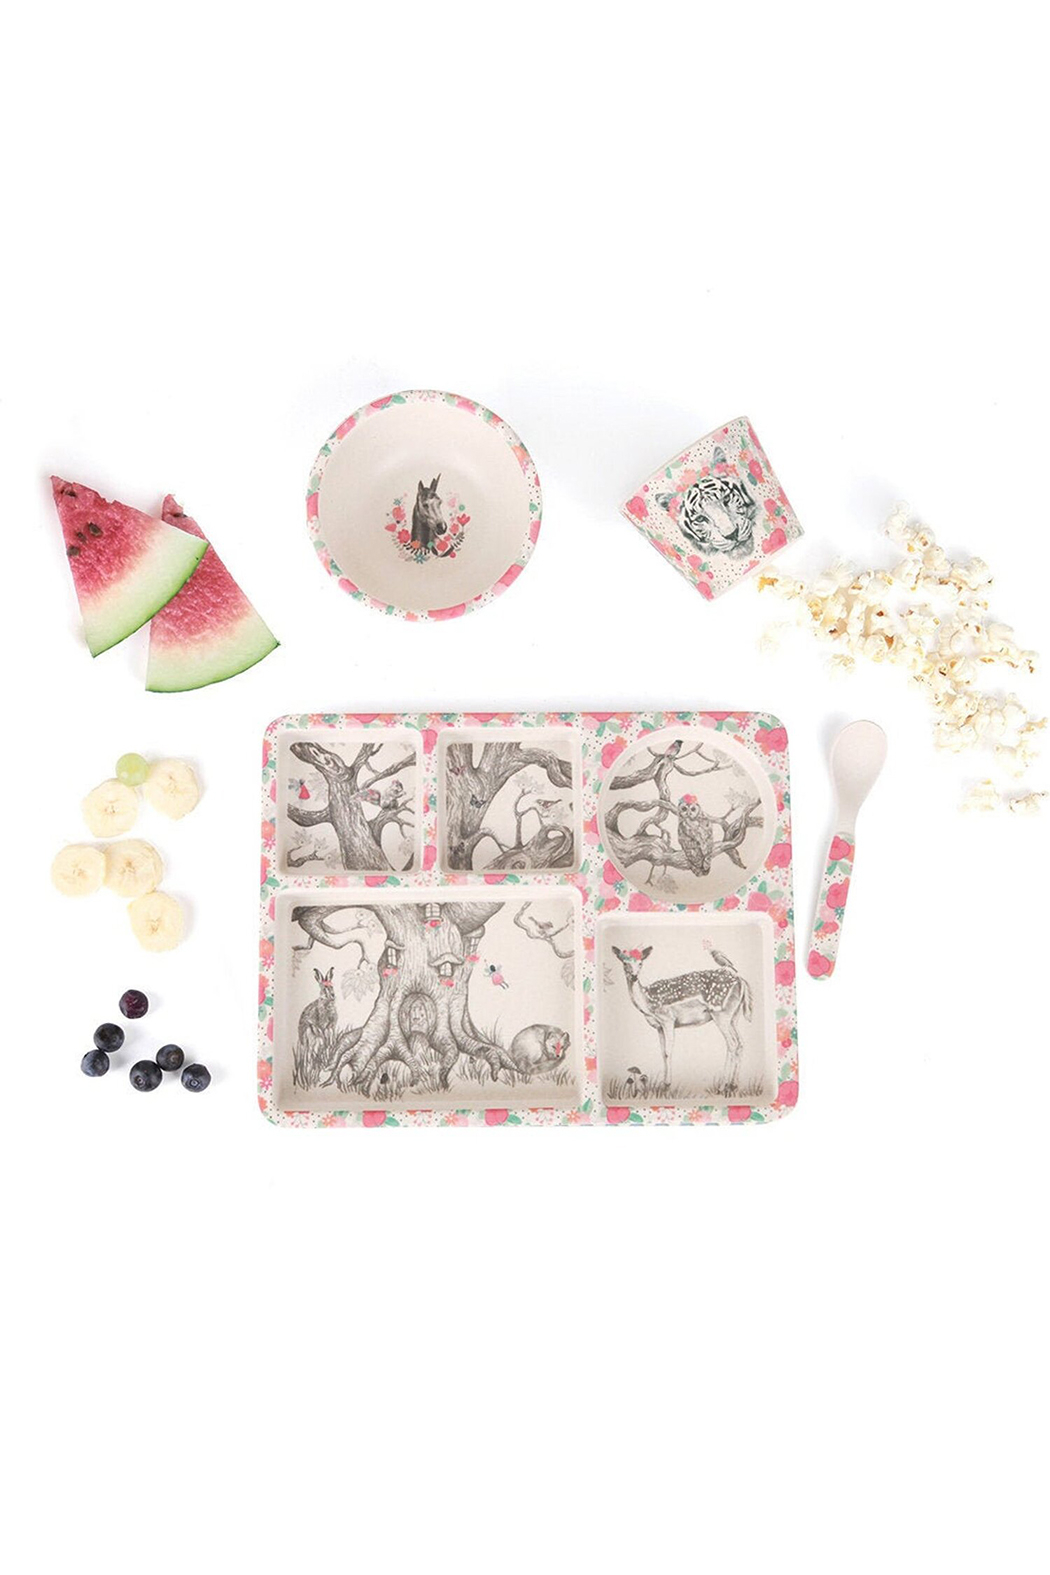 Love Mae Divided Plate Set - Enchanted Forest - Main Image